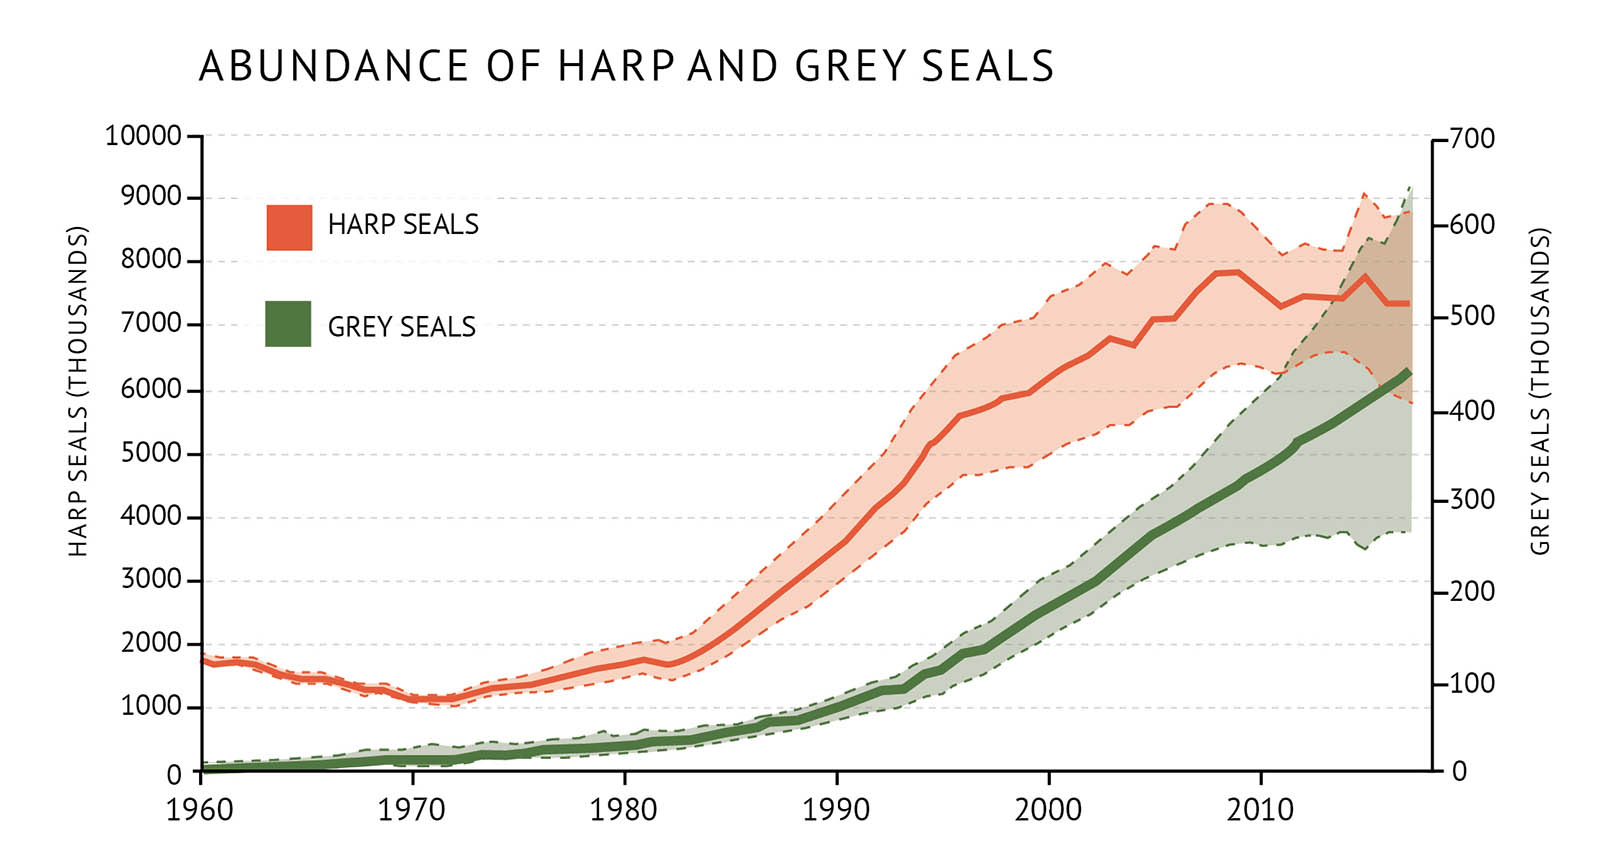 "Figure 19: The abundance of harp seals and grey seals in Atlantic Canada. They have been increasing in abundance to levels not seen in 50 years. A line graph illustrates the population of grey and harp seals in Atlantic Canada. Text above the graph says ""Abundance of harp and grey seals"". Two vertical axes are found on the graph, each representing one seal species. The axis at left shows numbers from 0 to 10,000 in increments of 1000 with text that reads ""Harp seals (thousands). The axis at right shows numbers from 0 to 700 in increments of 100 with text that reads ""Grey seals (thousands). The horizontal axis shows years between 1960-2010 in 10 year increments. A legend appears in the top left-hand corner of the graph. The harp seal abundance is represented by an orange line which increases over time from between 1000 to 2000 thousand in the 1970s to the 2000s it reachs almost 8000 thousand. A green line represents grey seal abundance which also increases over time although it is lower than the orange line. It starts near zero in the 1960s and increases to over 600 thousand. Each line is surrounded by a shaded area which represents the confidence in the abundance value."